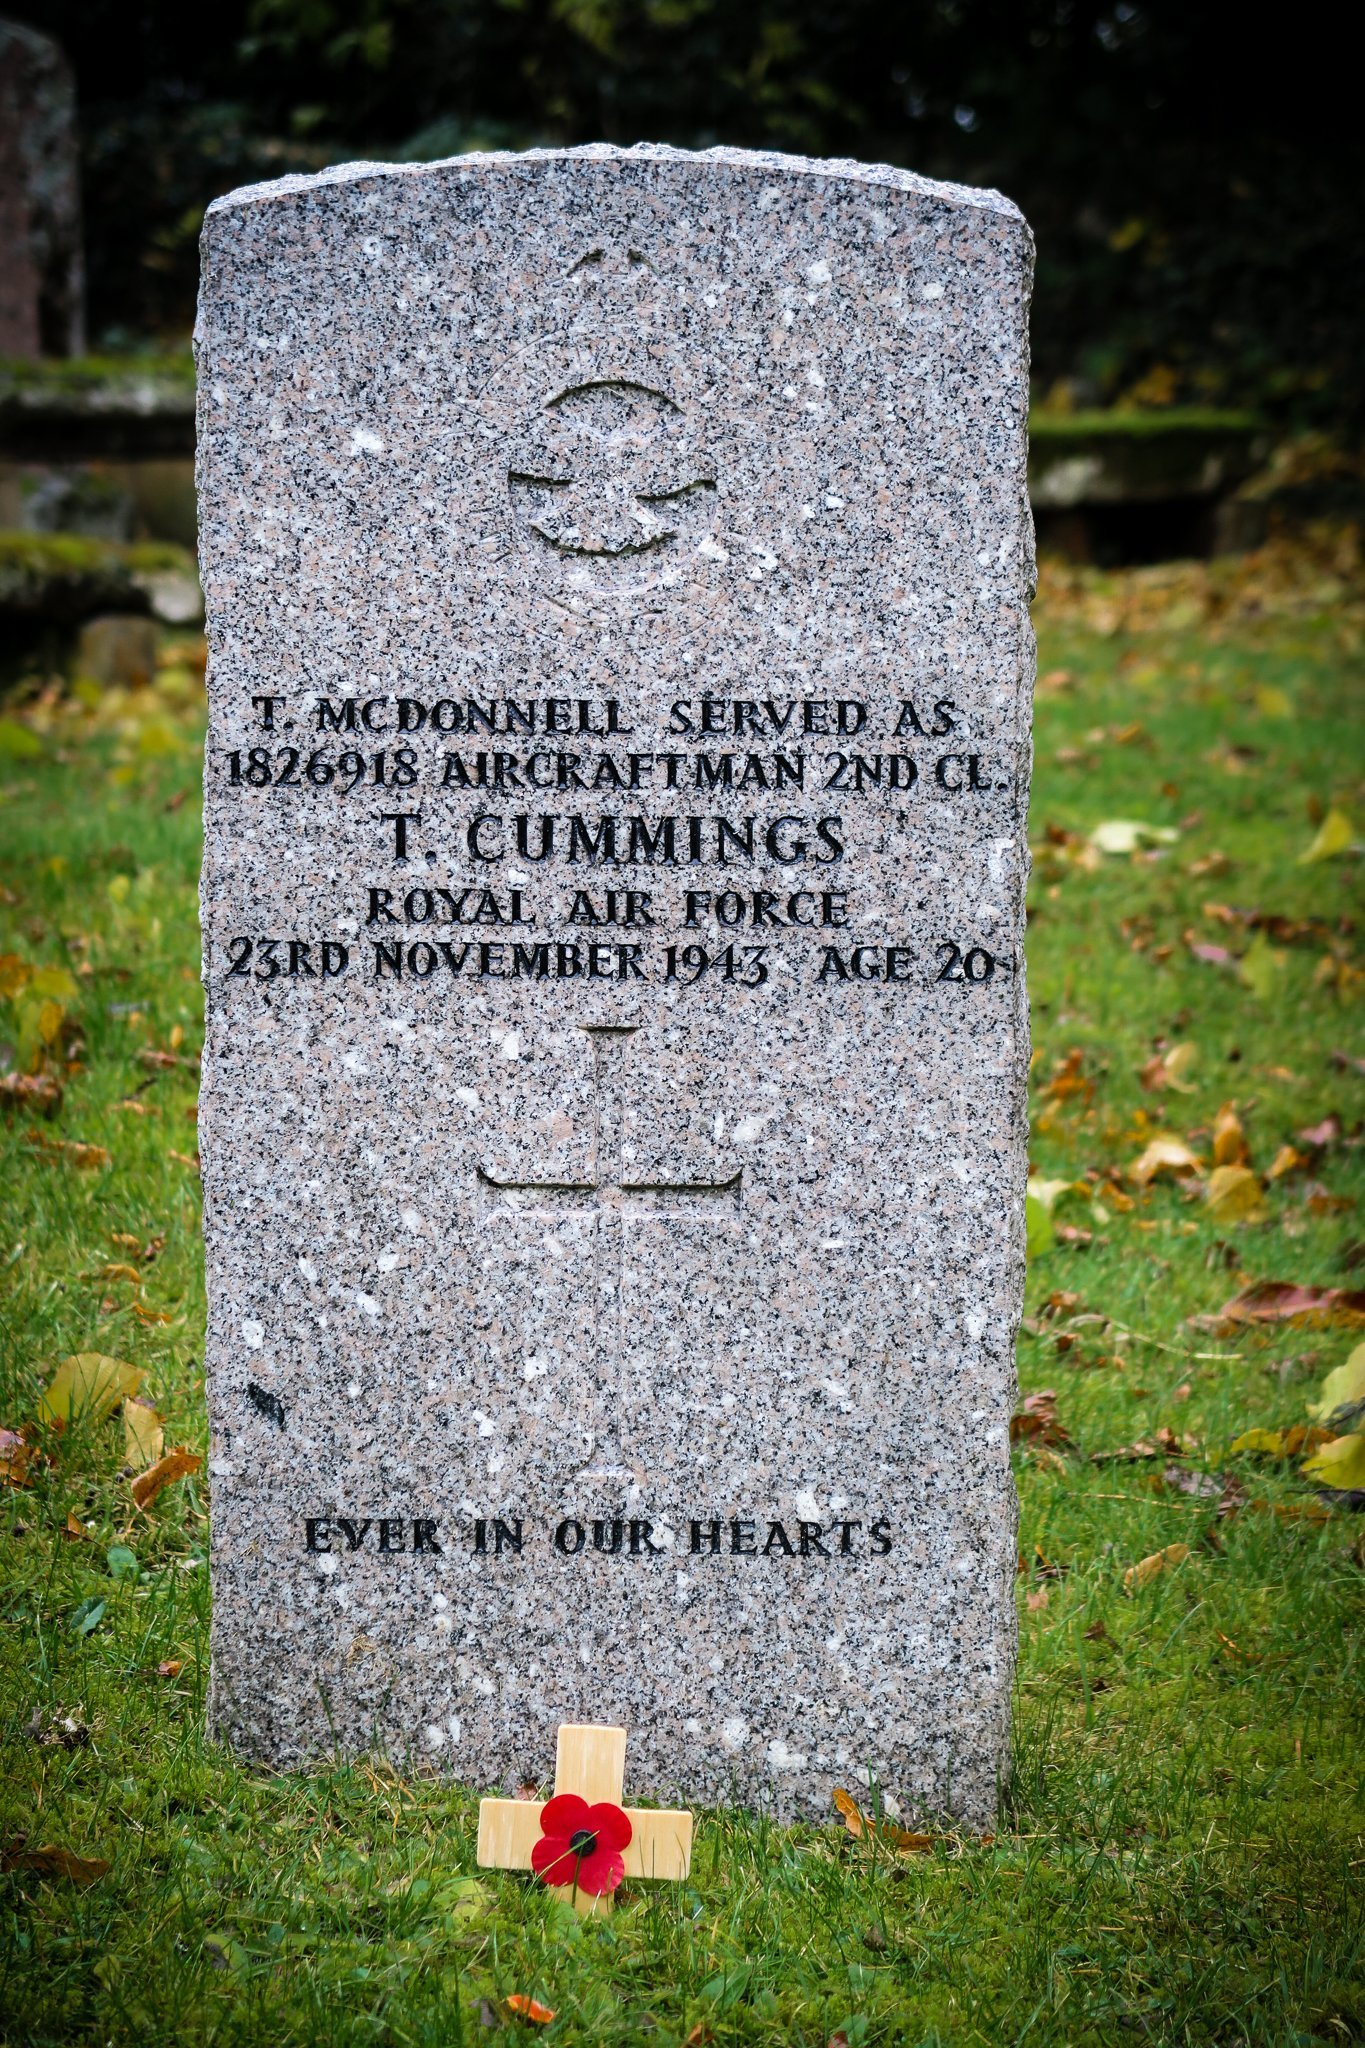 Gravestone of a young airman killed in the 2nd world war, with a poppy attached to a small cross in the foreground